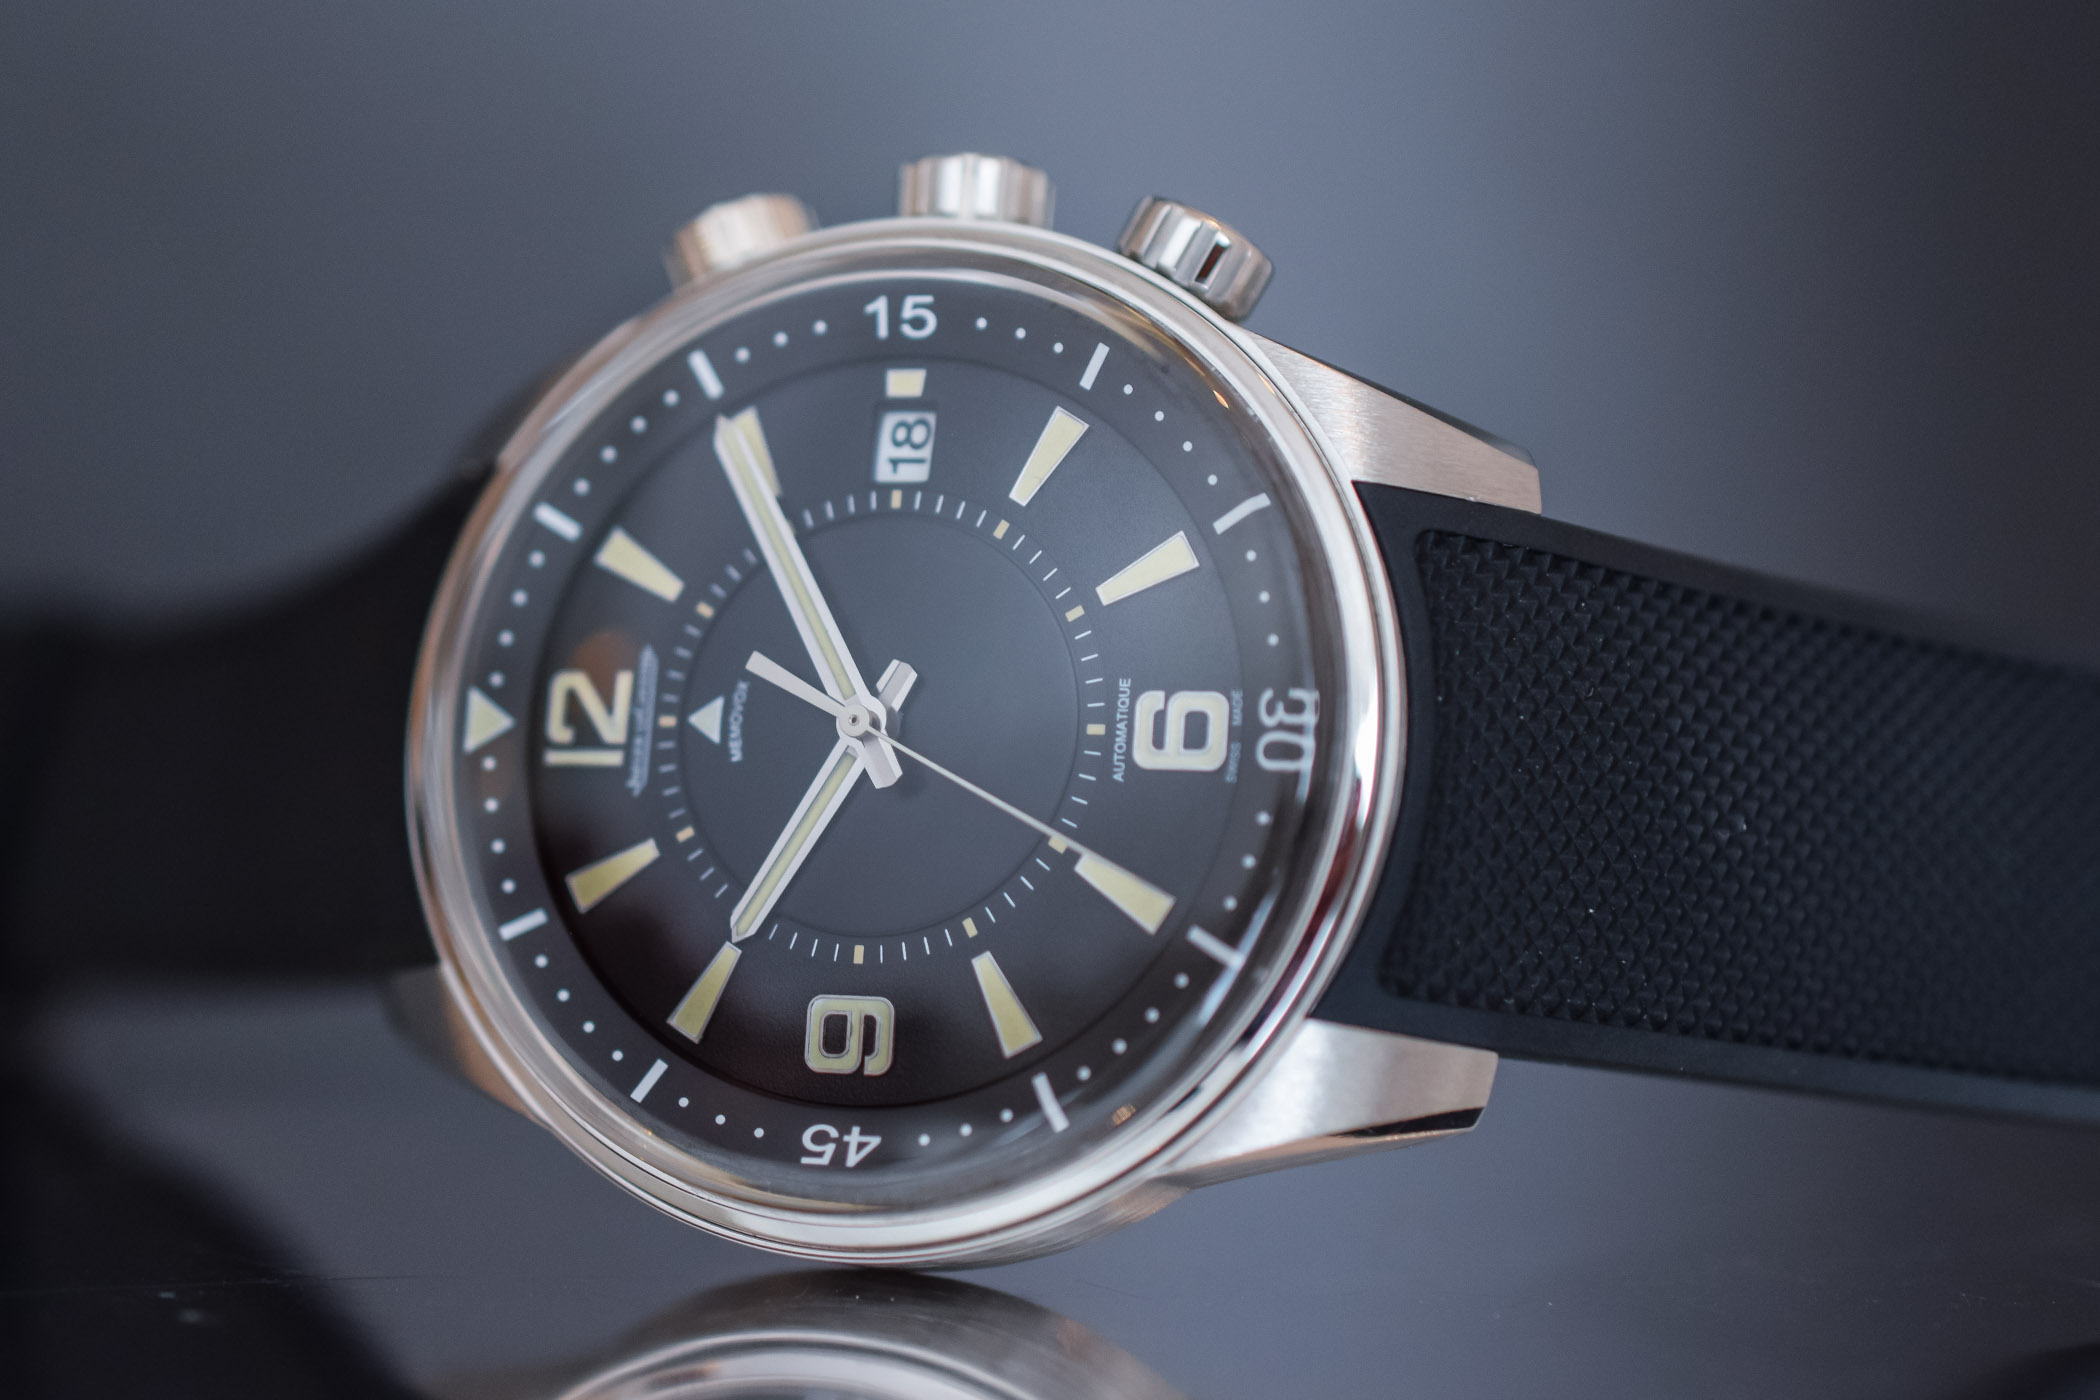 Jaeger-LeCoultre Polaris 2018 collection